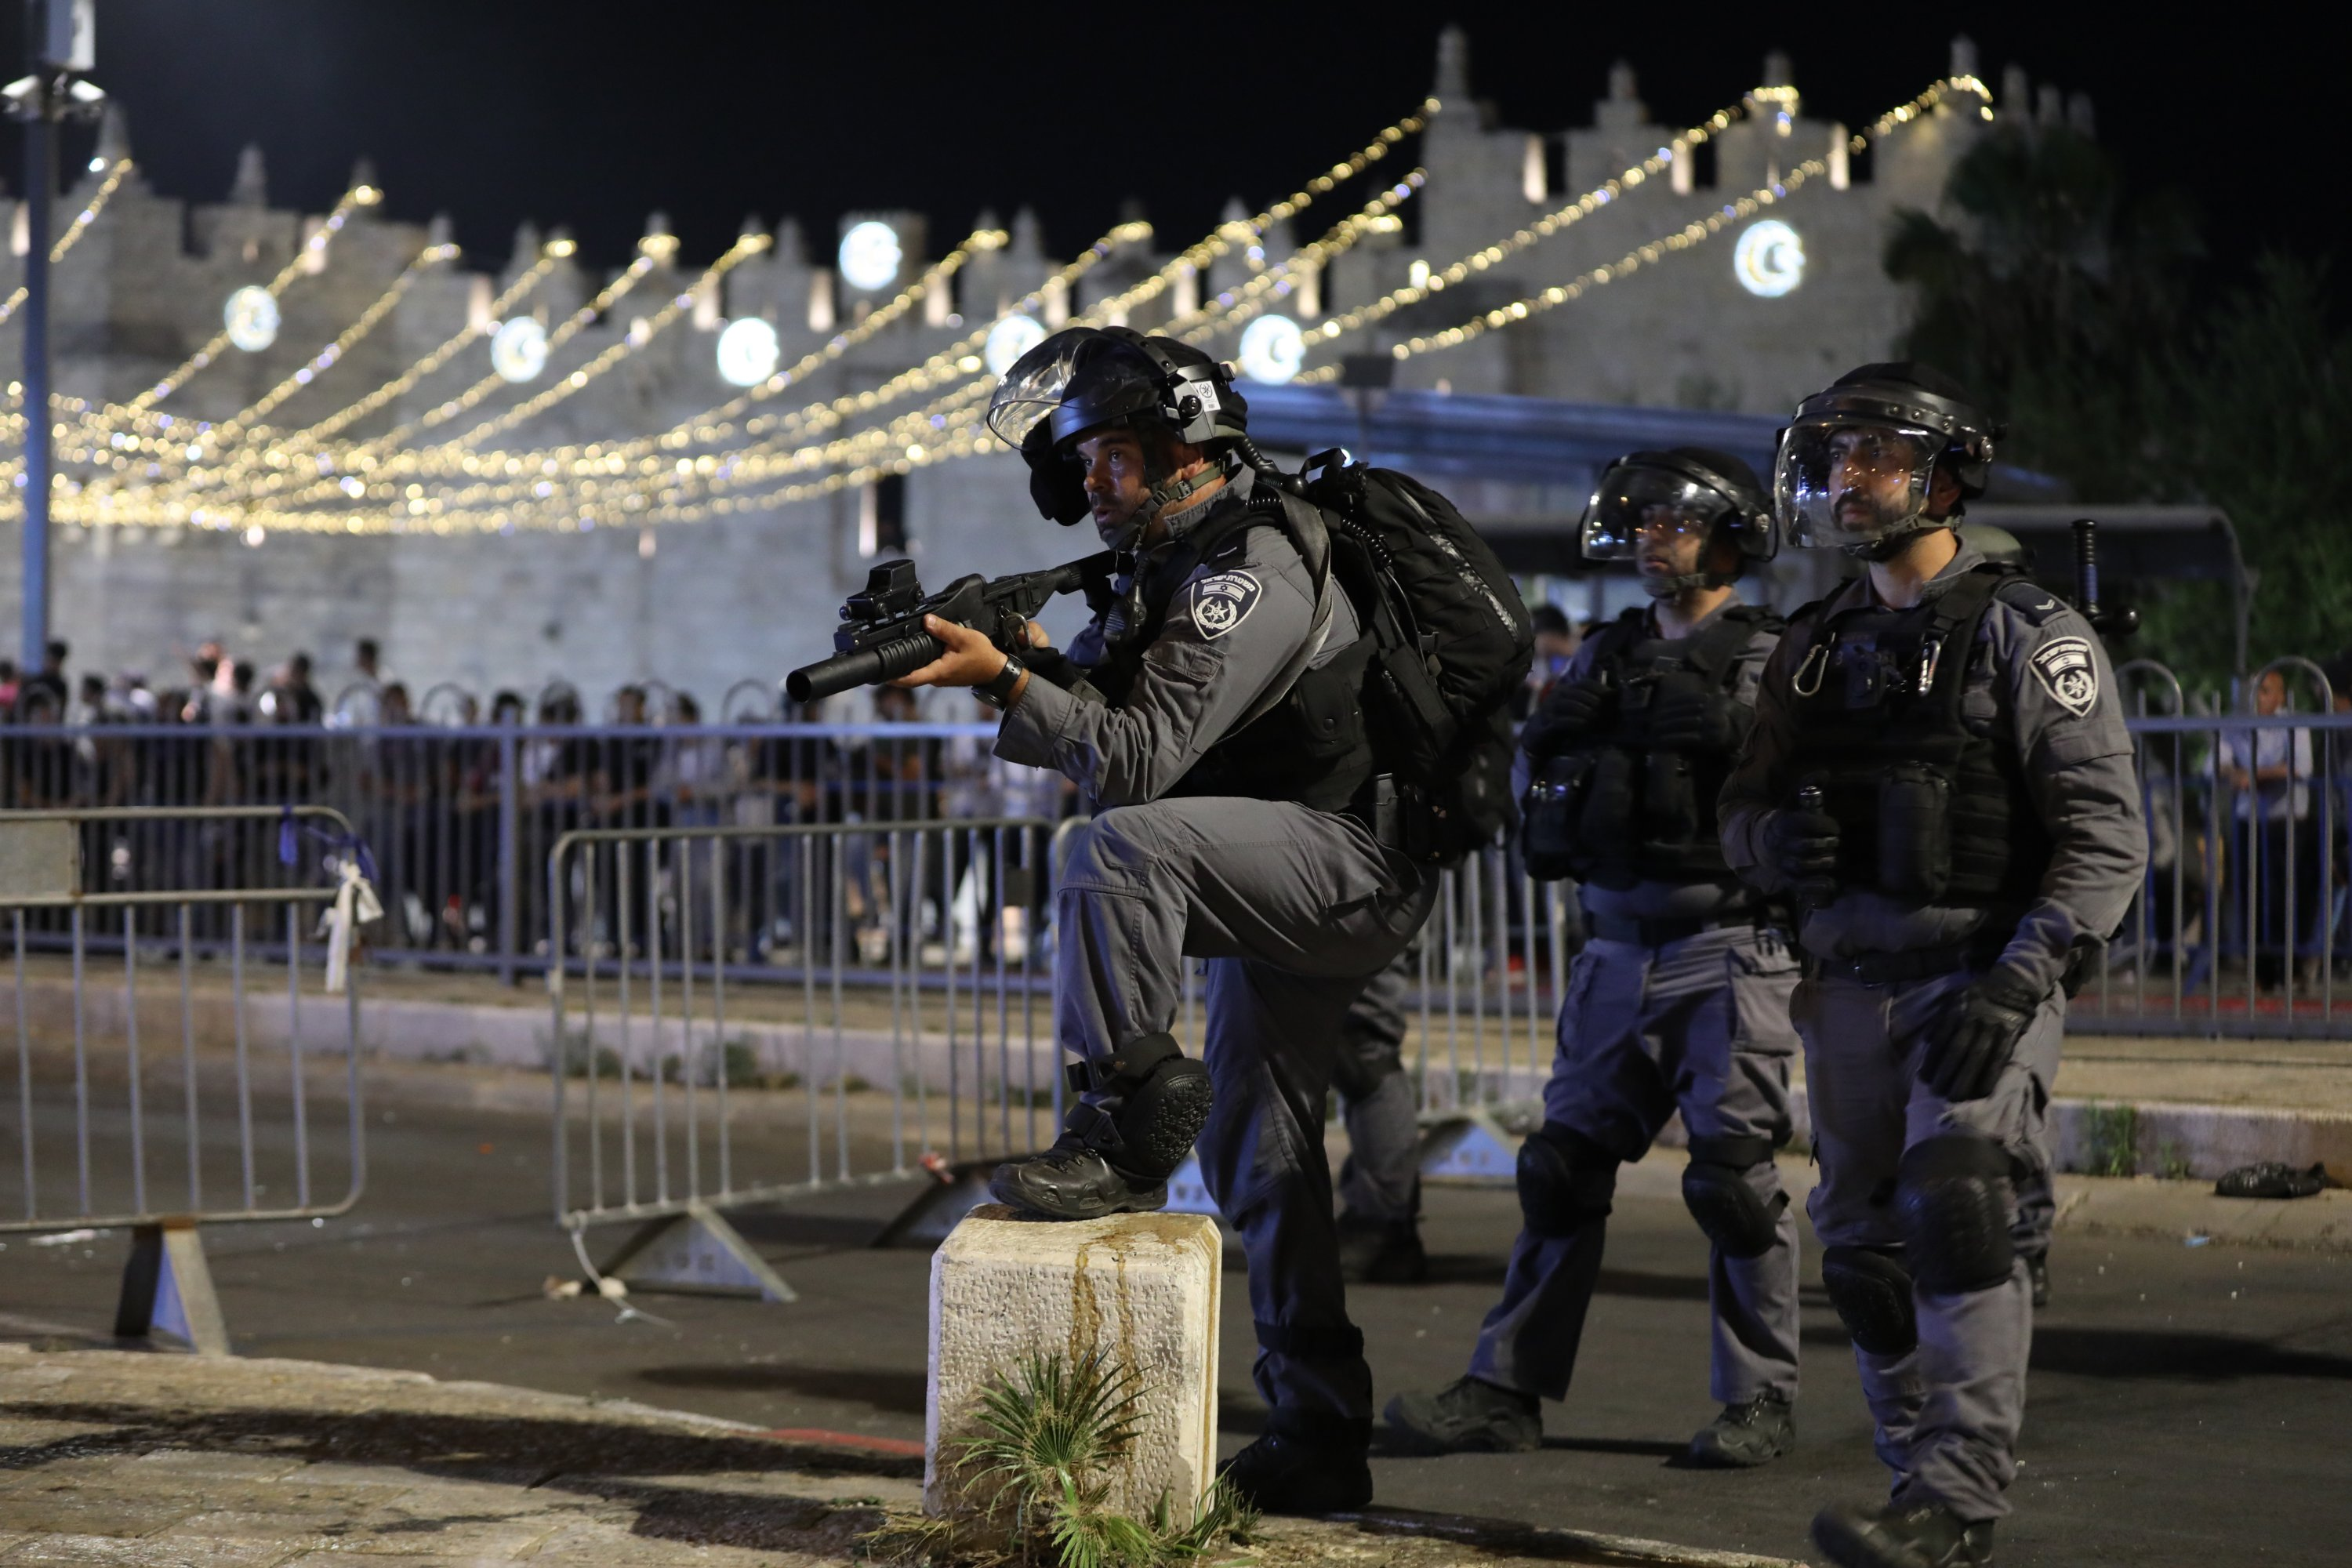 Israeli police are seen during attacks targeting Palestinians at Damascus Gate on Laylat al-Qadr during the holy month of Ramadan, in Jerusalem's Old City, May 8, 2021. (EPA Photo)